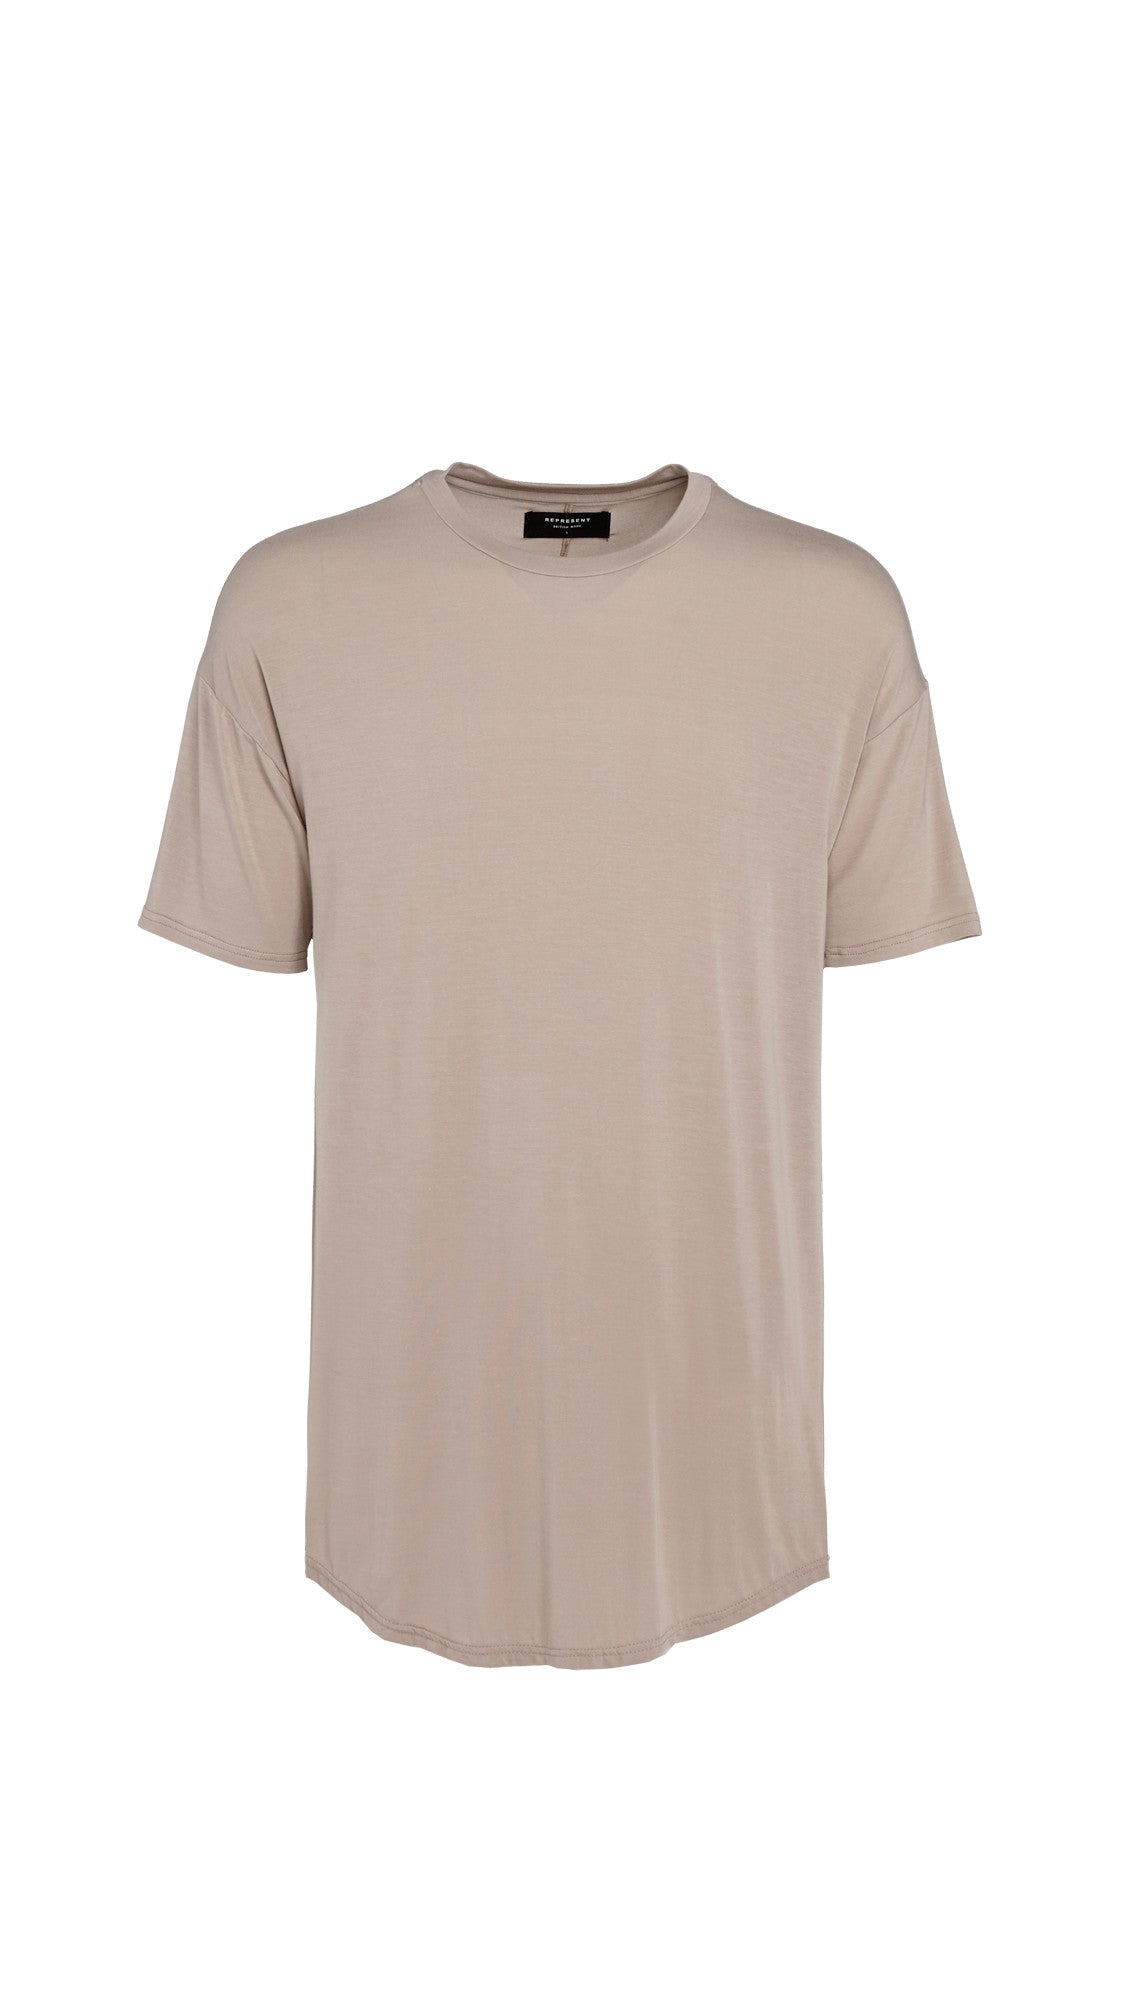 Essential Scooped T-shirt - Bone